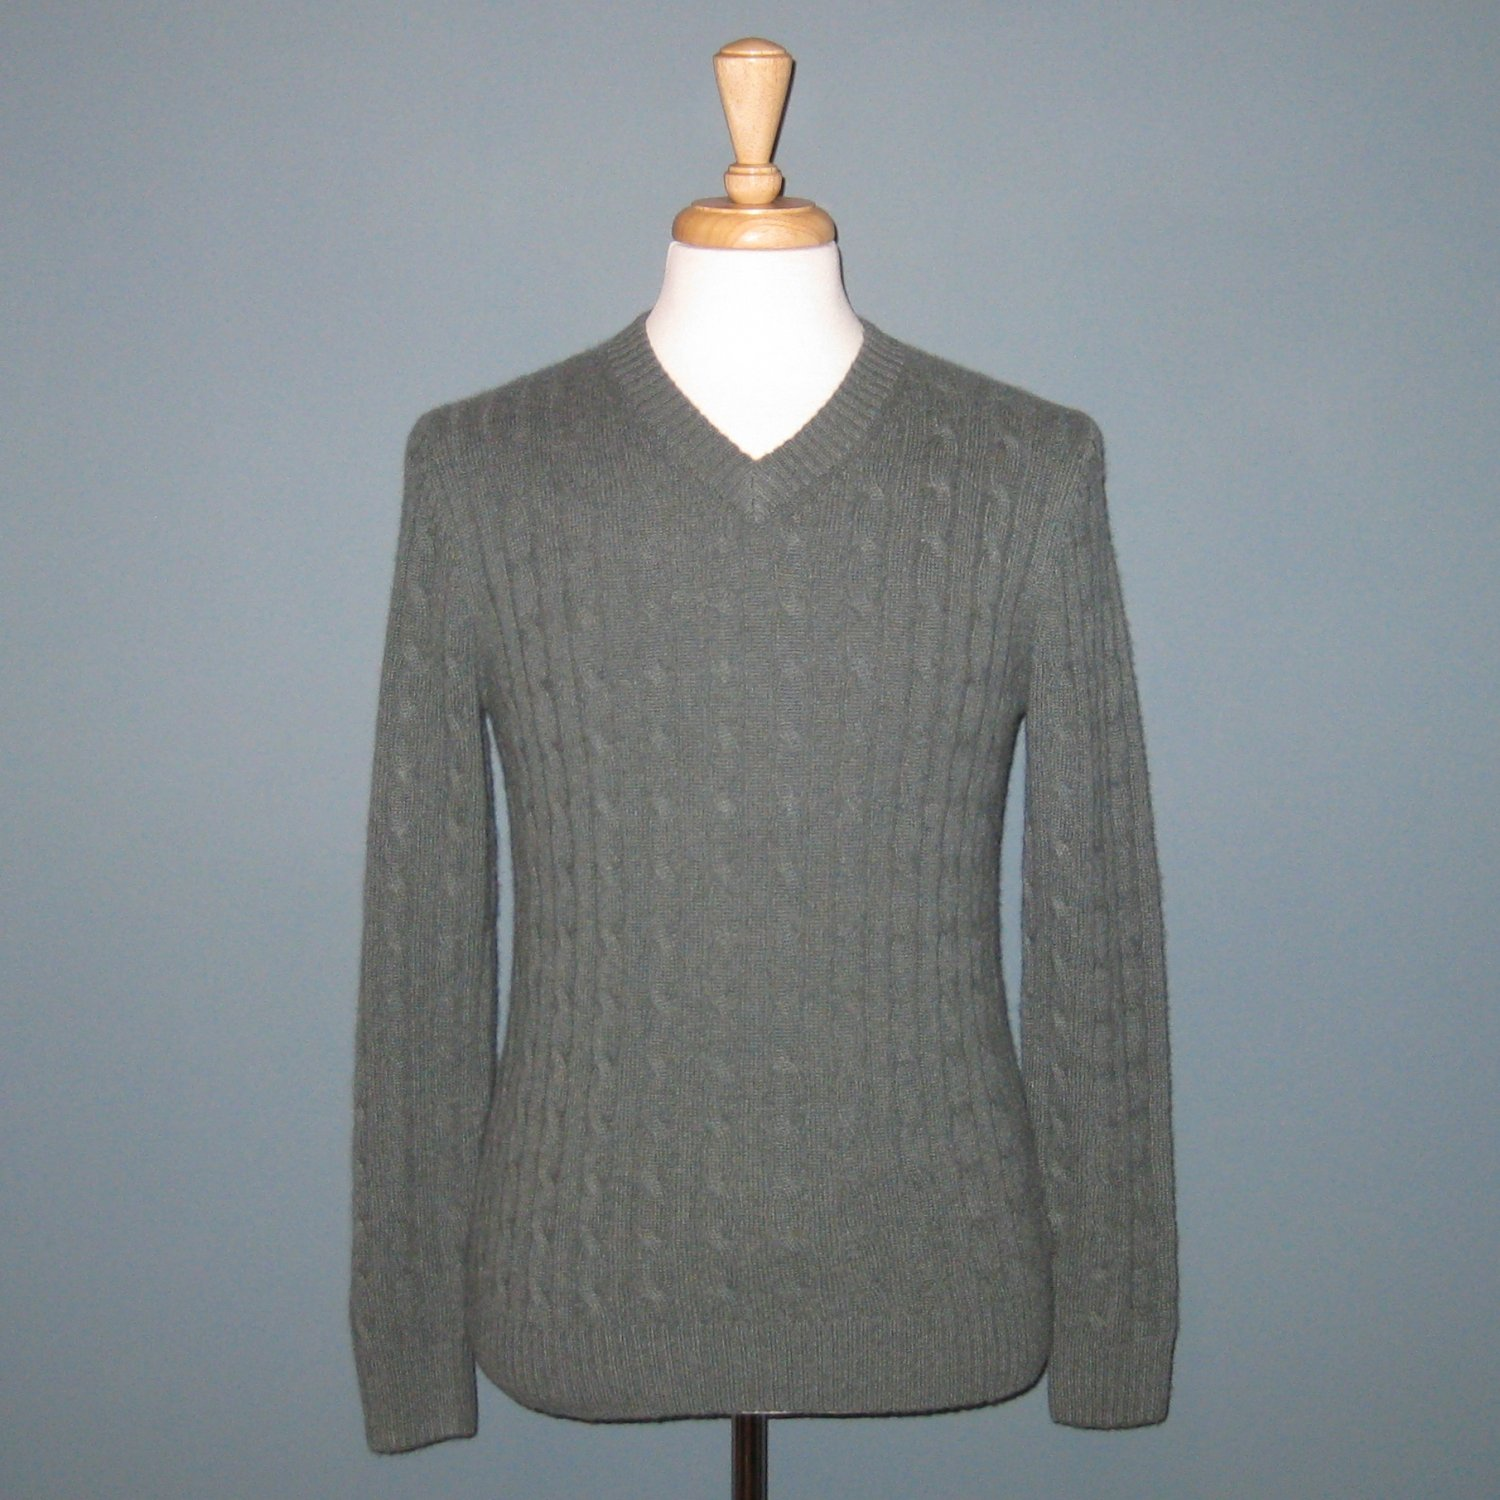 NWT Daniel Bishop 2-Ply 100% Cashmere Green Cable Knit Long Sleeve V-neck Sweater - S